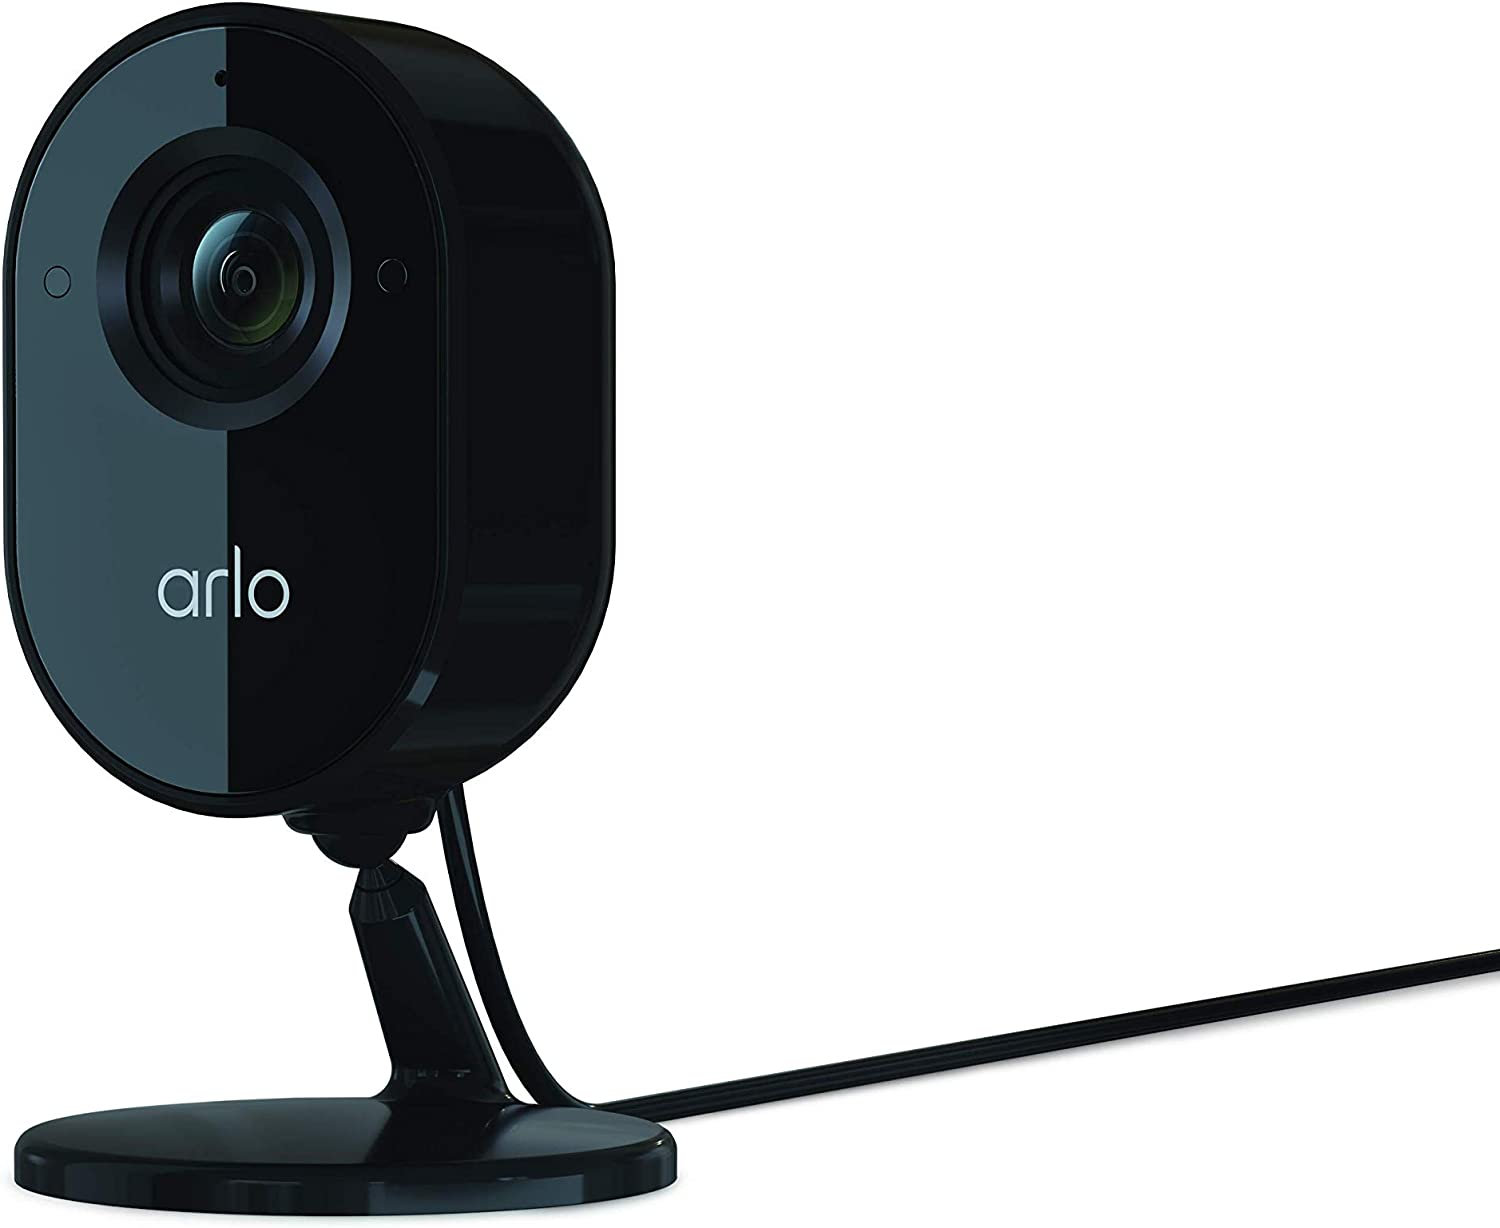 Arlo Essential Indoor Security Camera - 1080P Video Quality, 2-Way Audio, Package Detection, Motion Detection and Alerts, Built-in Siren, Night Vision, Wired, Compatible with Alexa, Black - VMC2040B